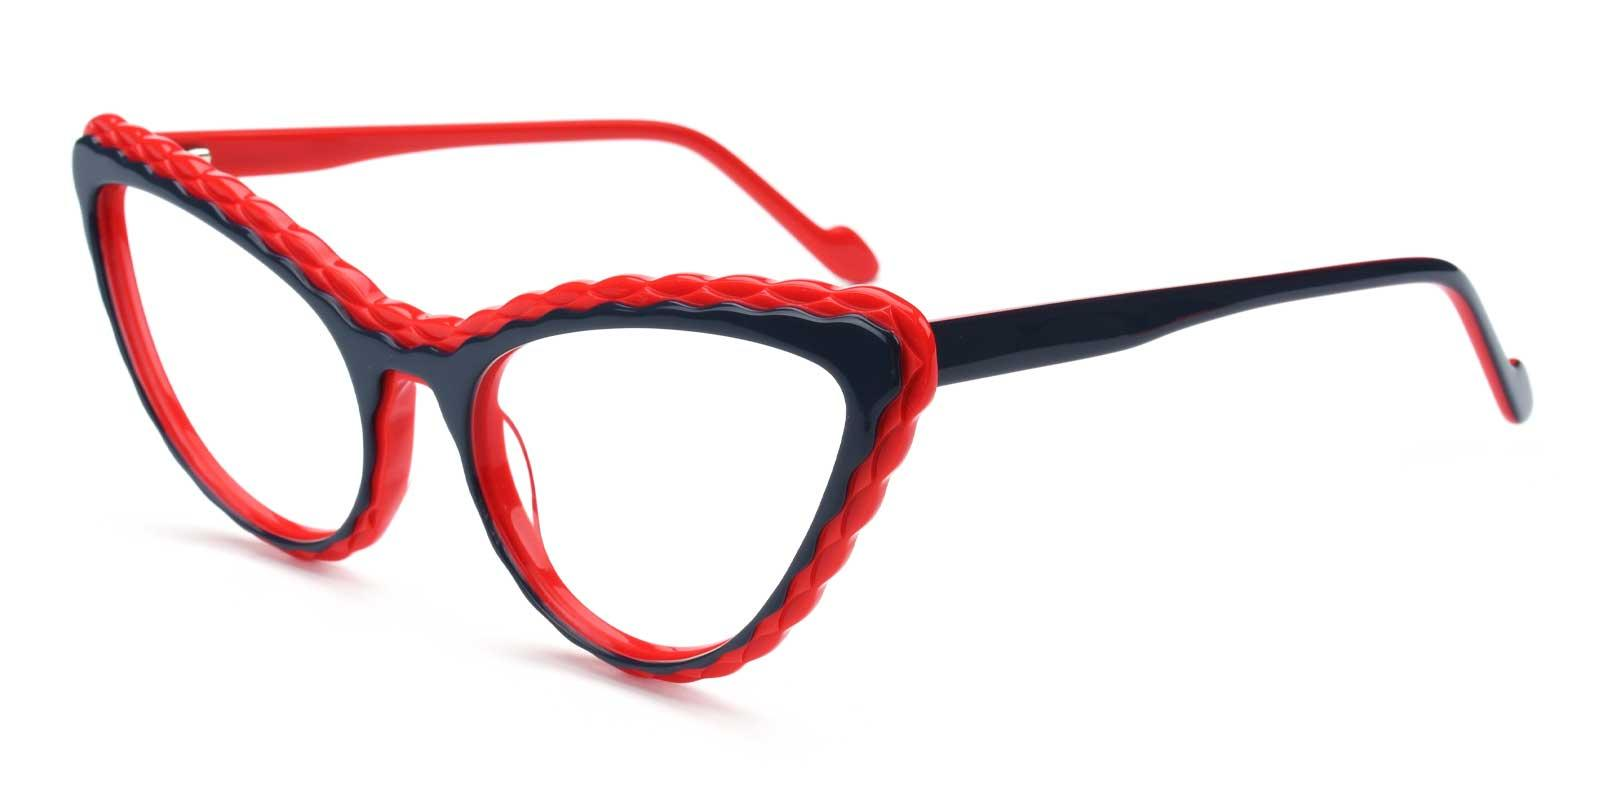 Barry-Red-Cat-Acetate-Eyeglasses-additional1